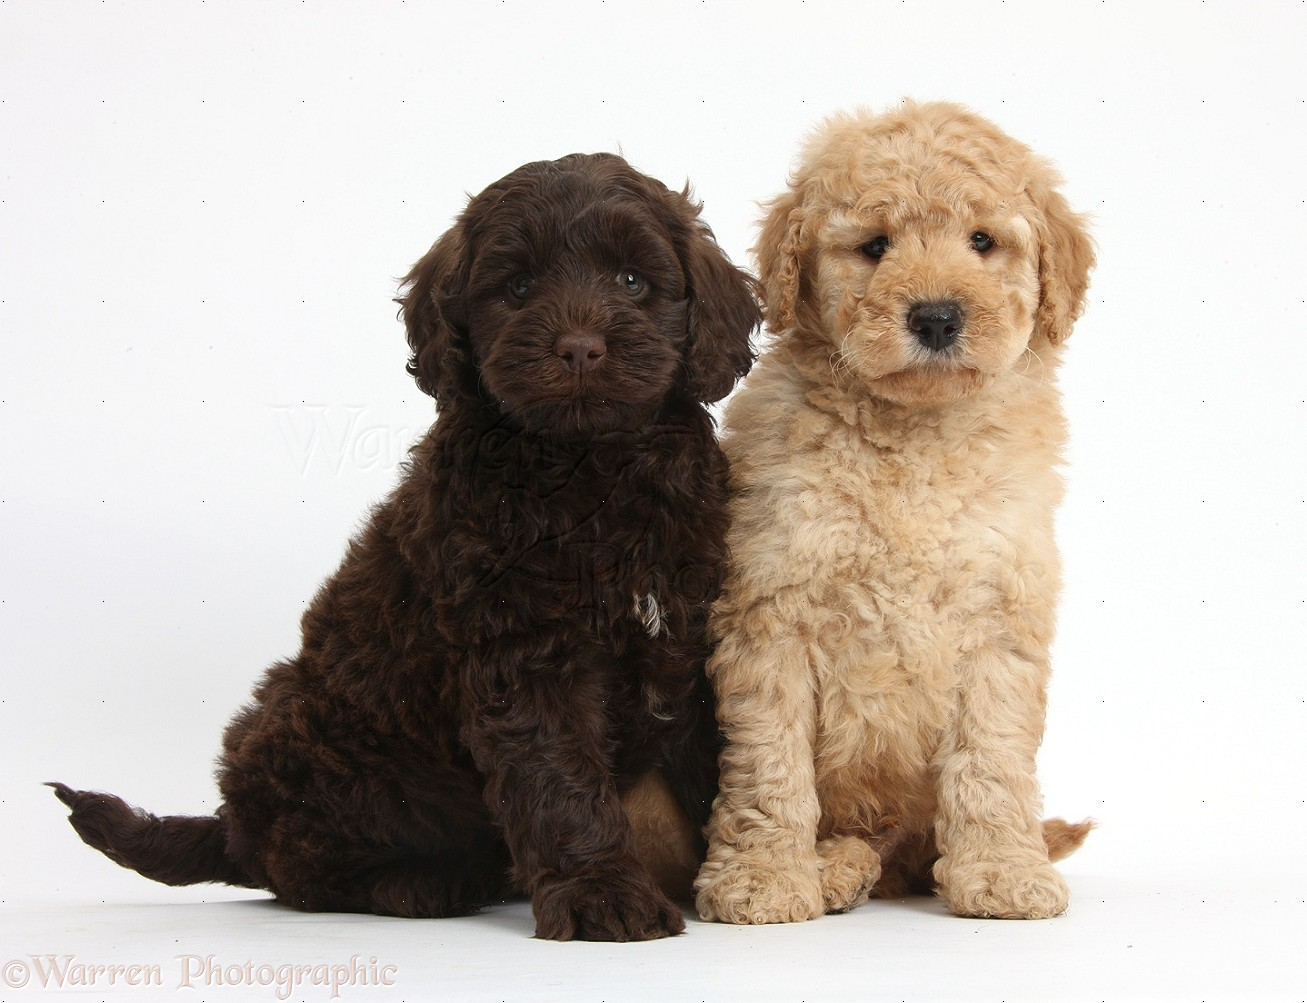 Dogs Cute Toy Goldendoodle Puppies Photo Wp37994